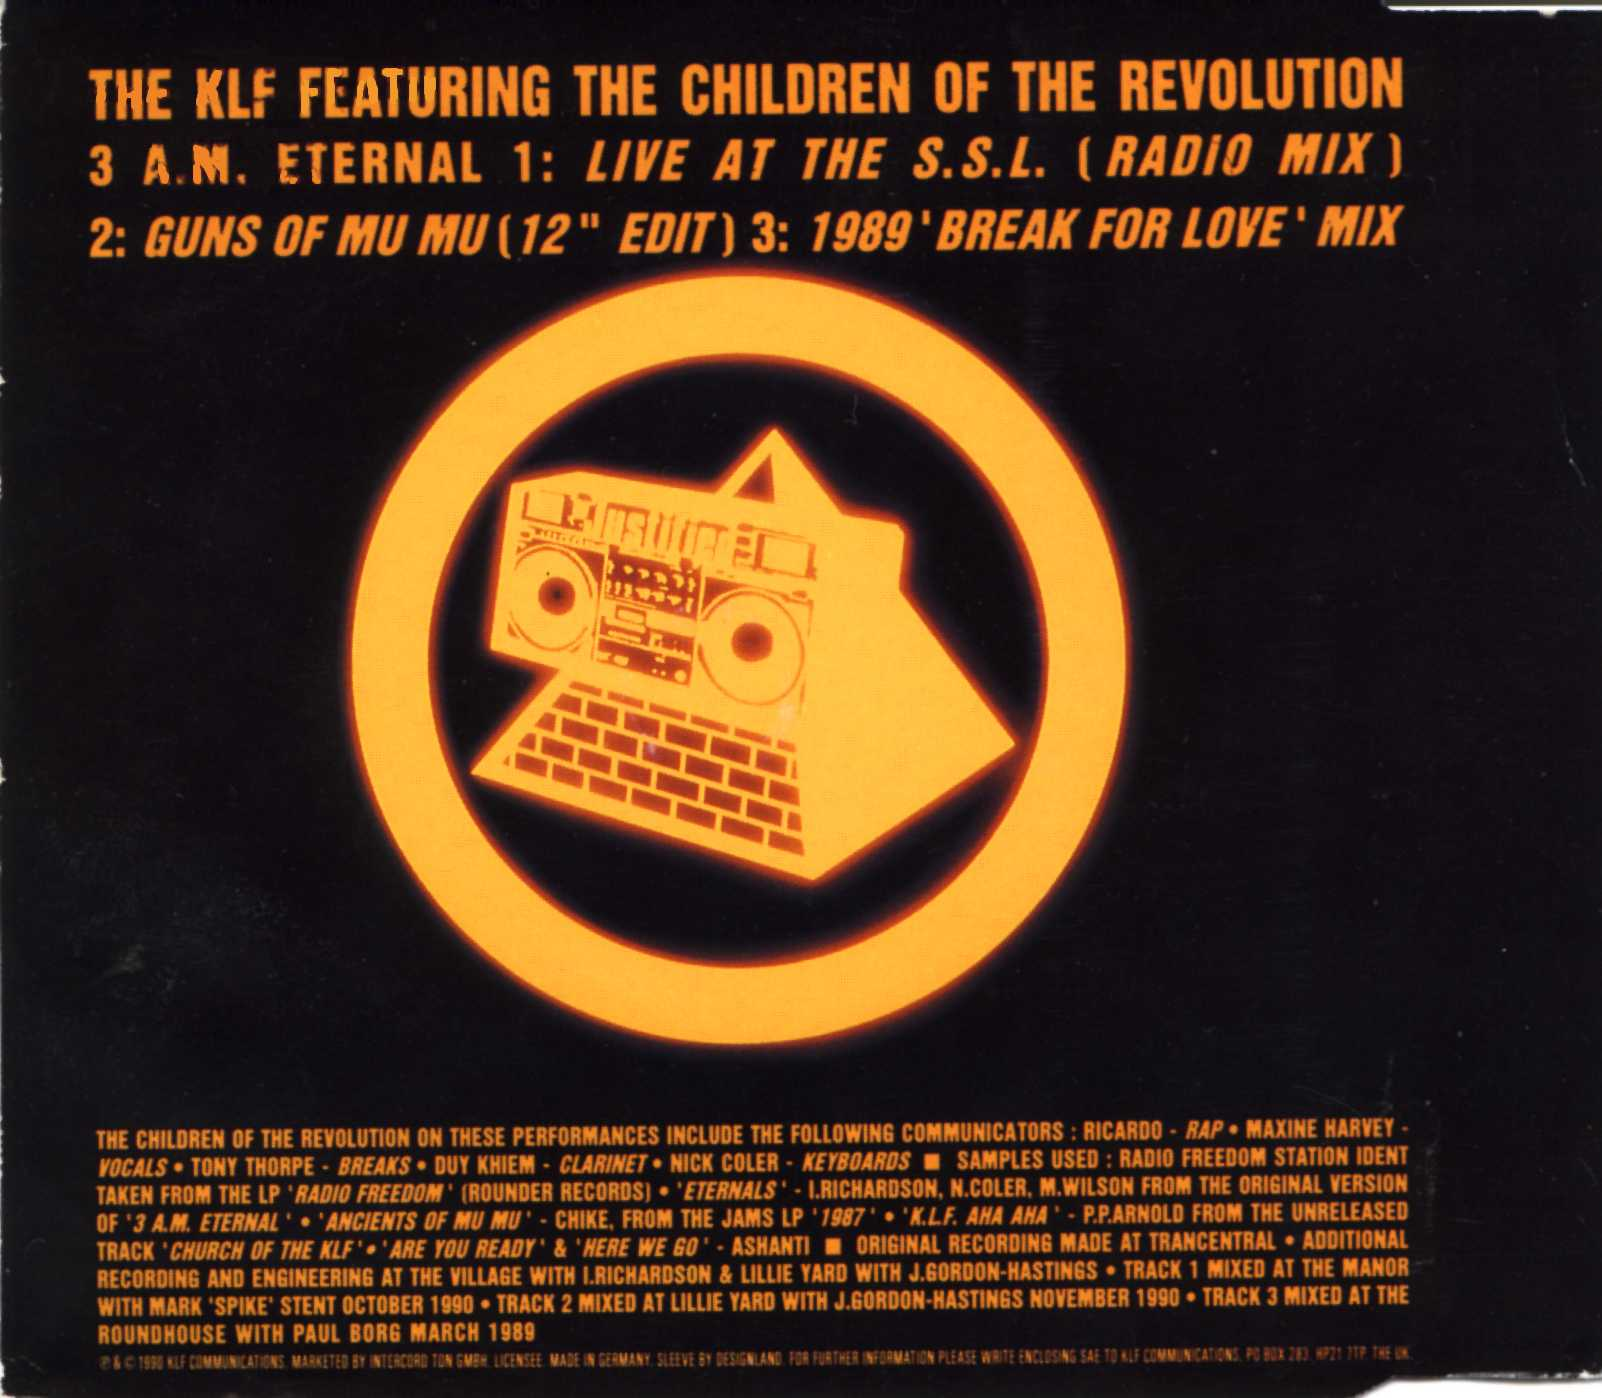 The KLF - America: What Time Is January?